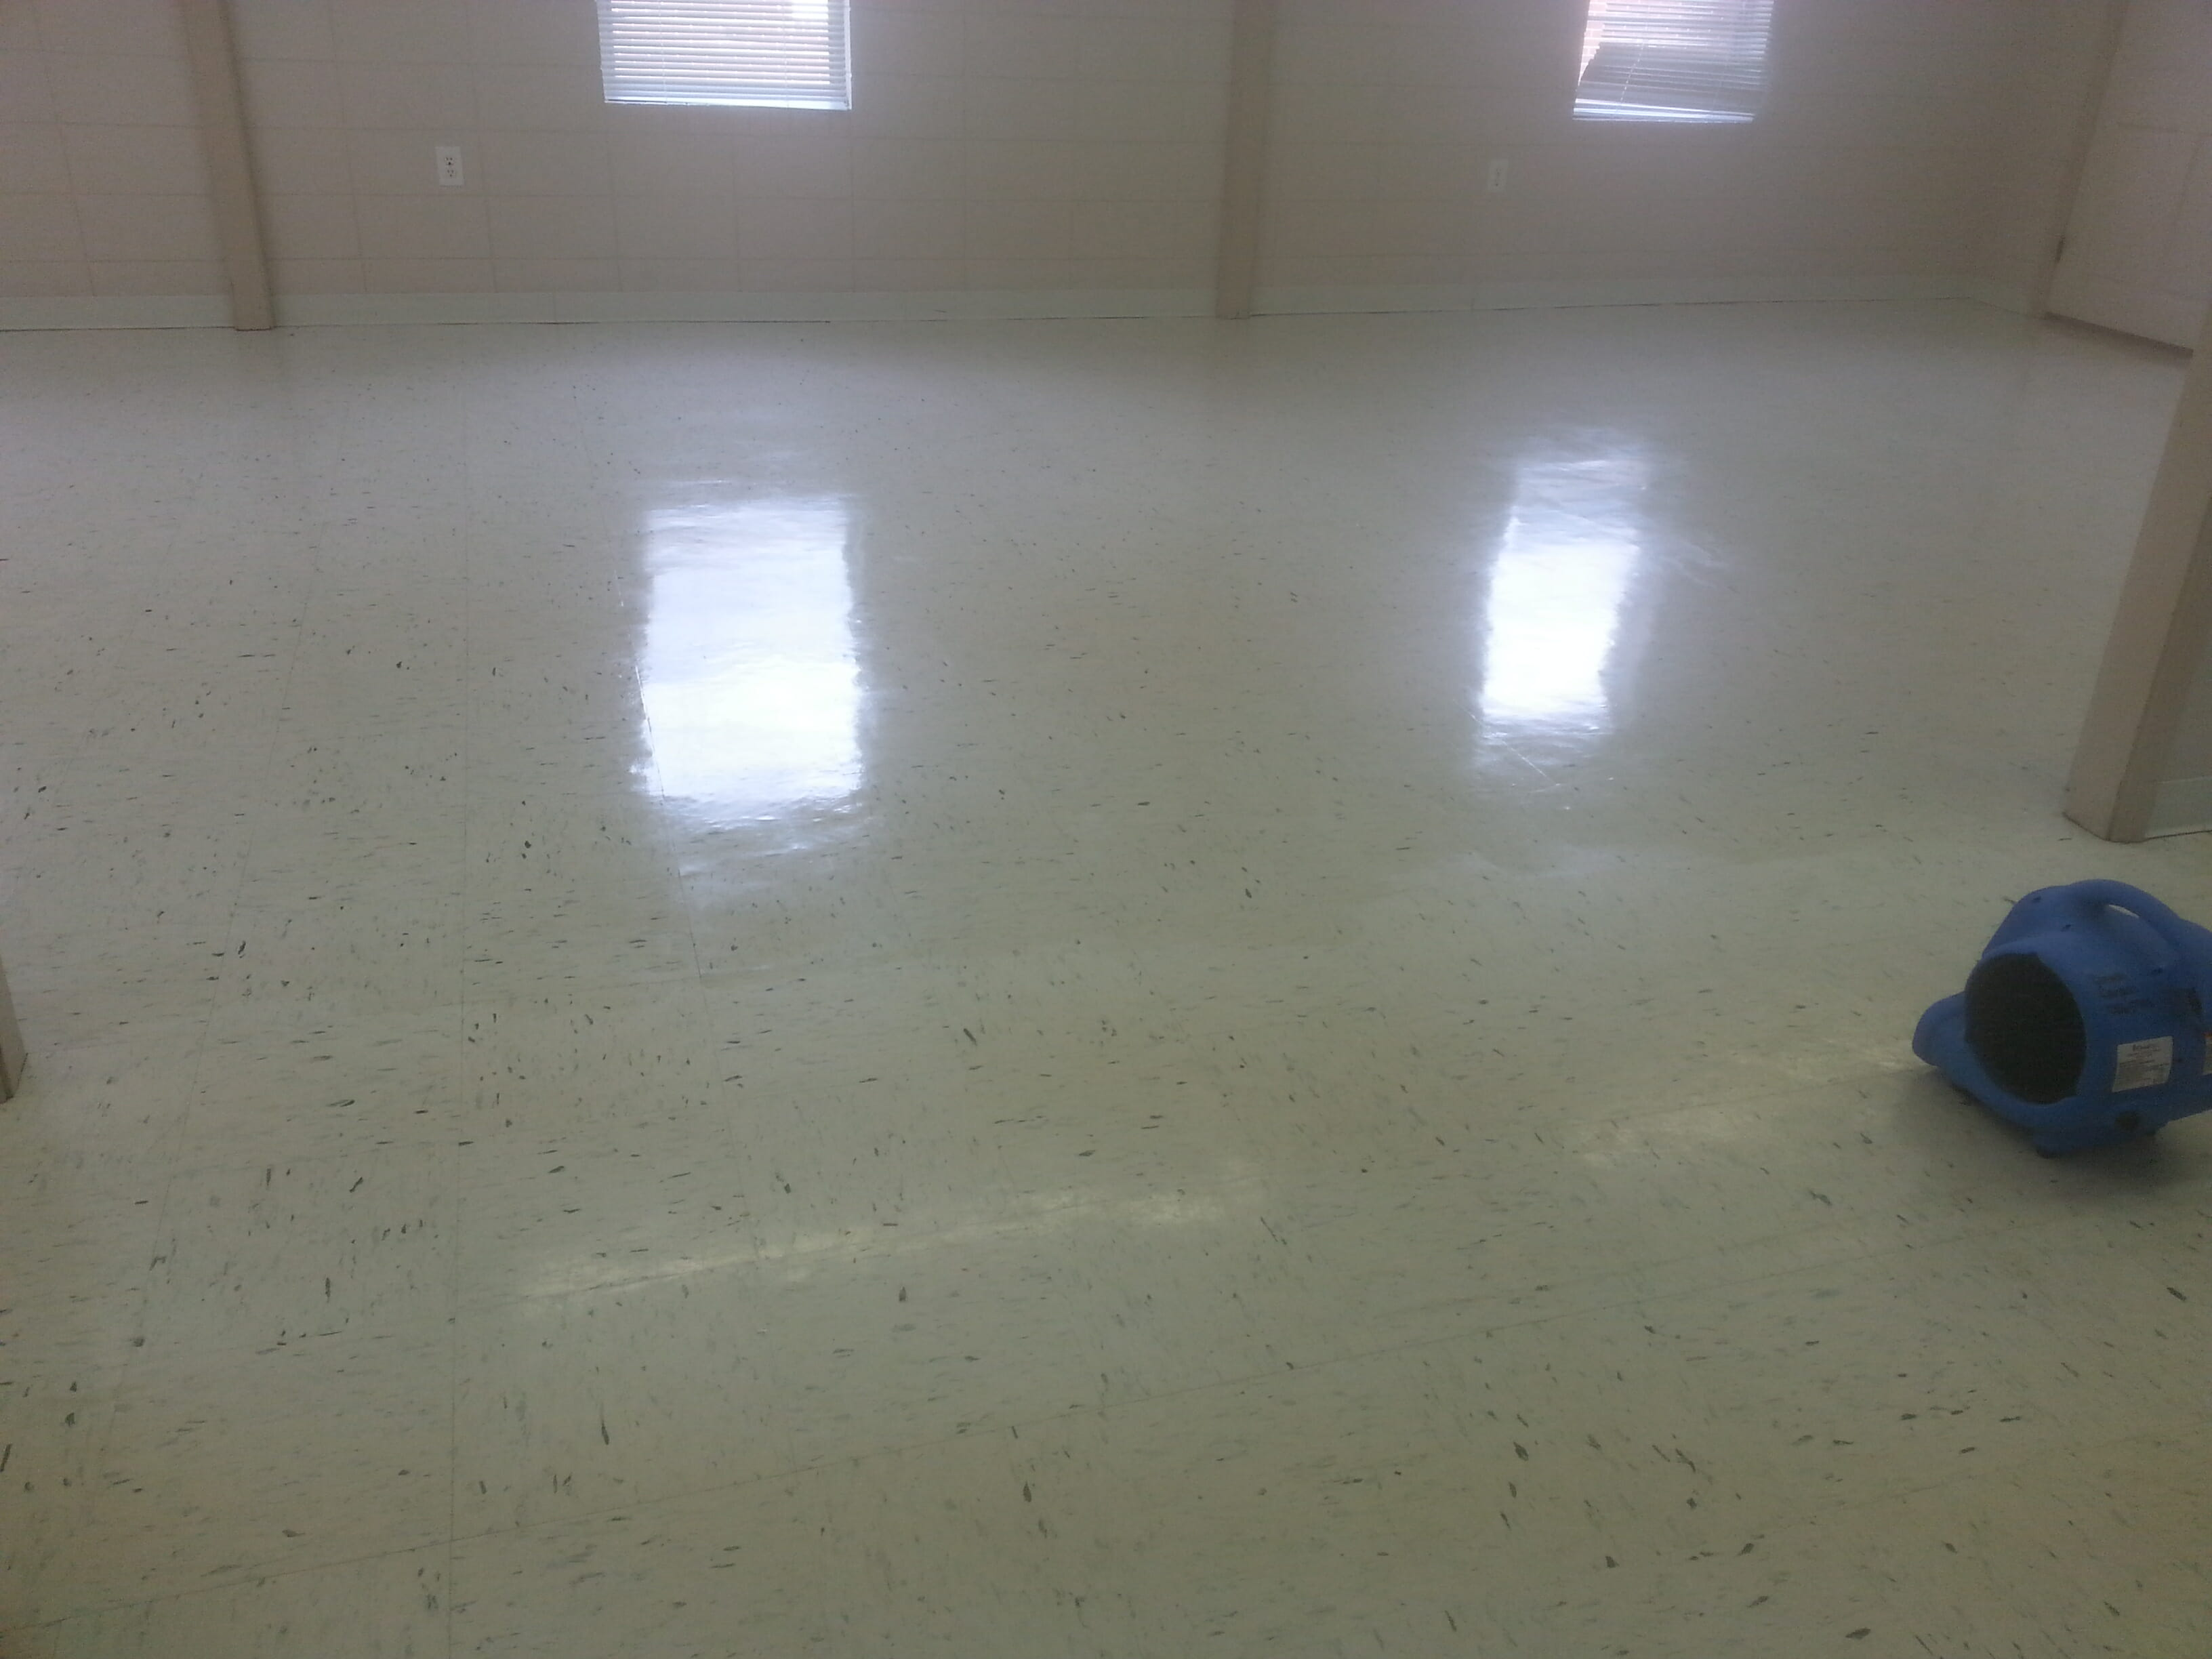 Carpet and Tile Cleaning before and after shots.